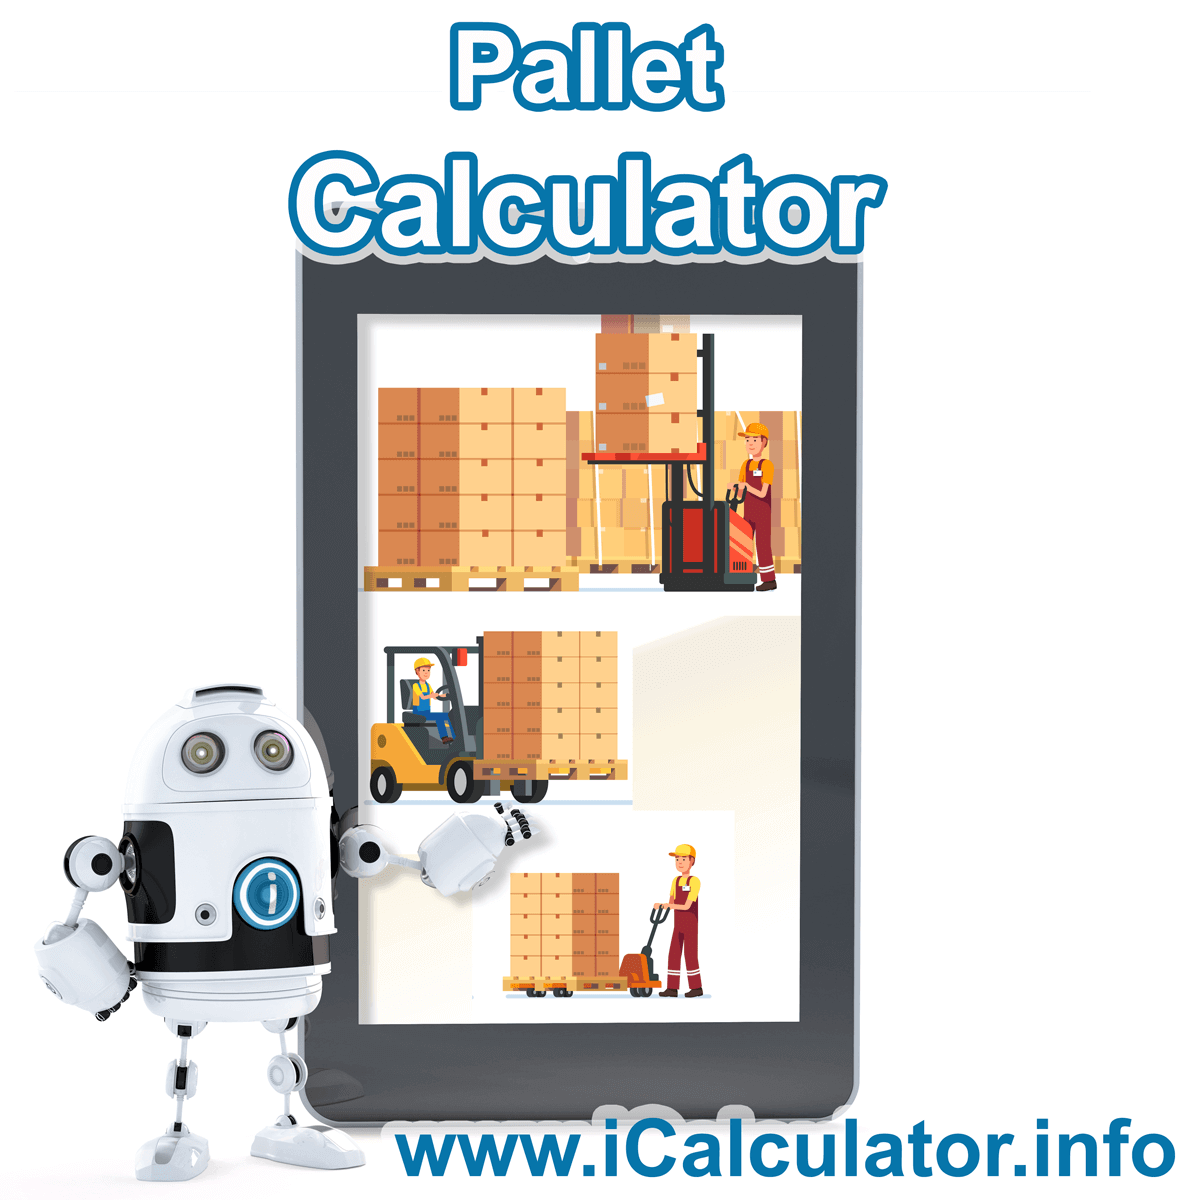 Pallet Calculator | Online calculators for the Logistics industry